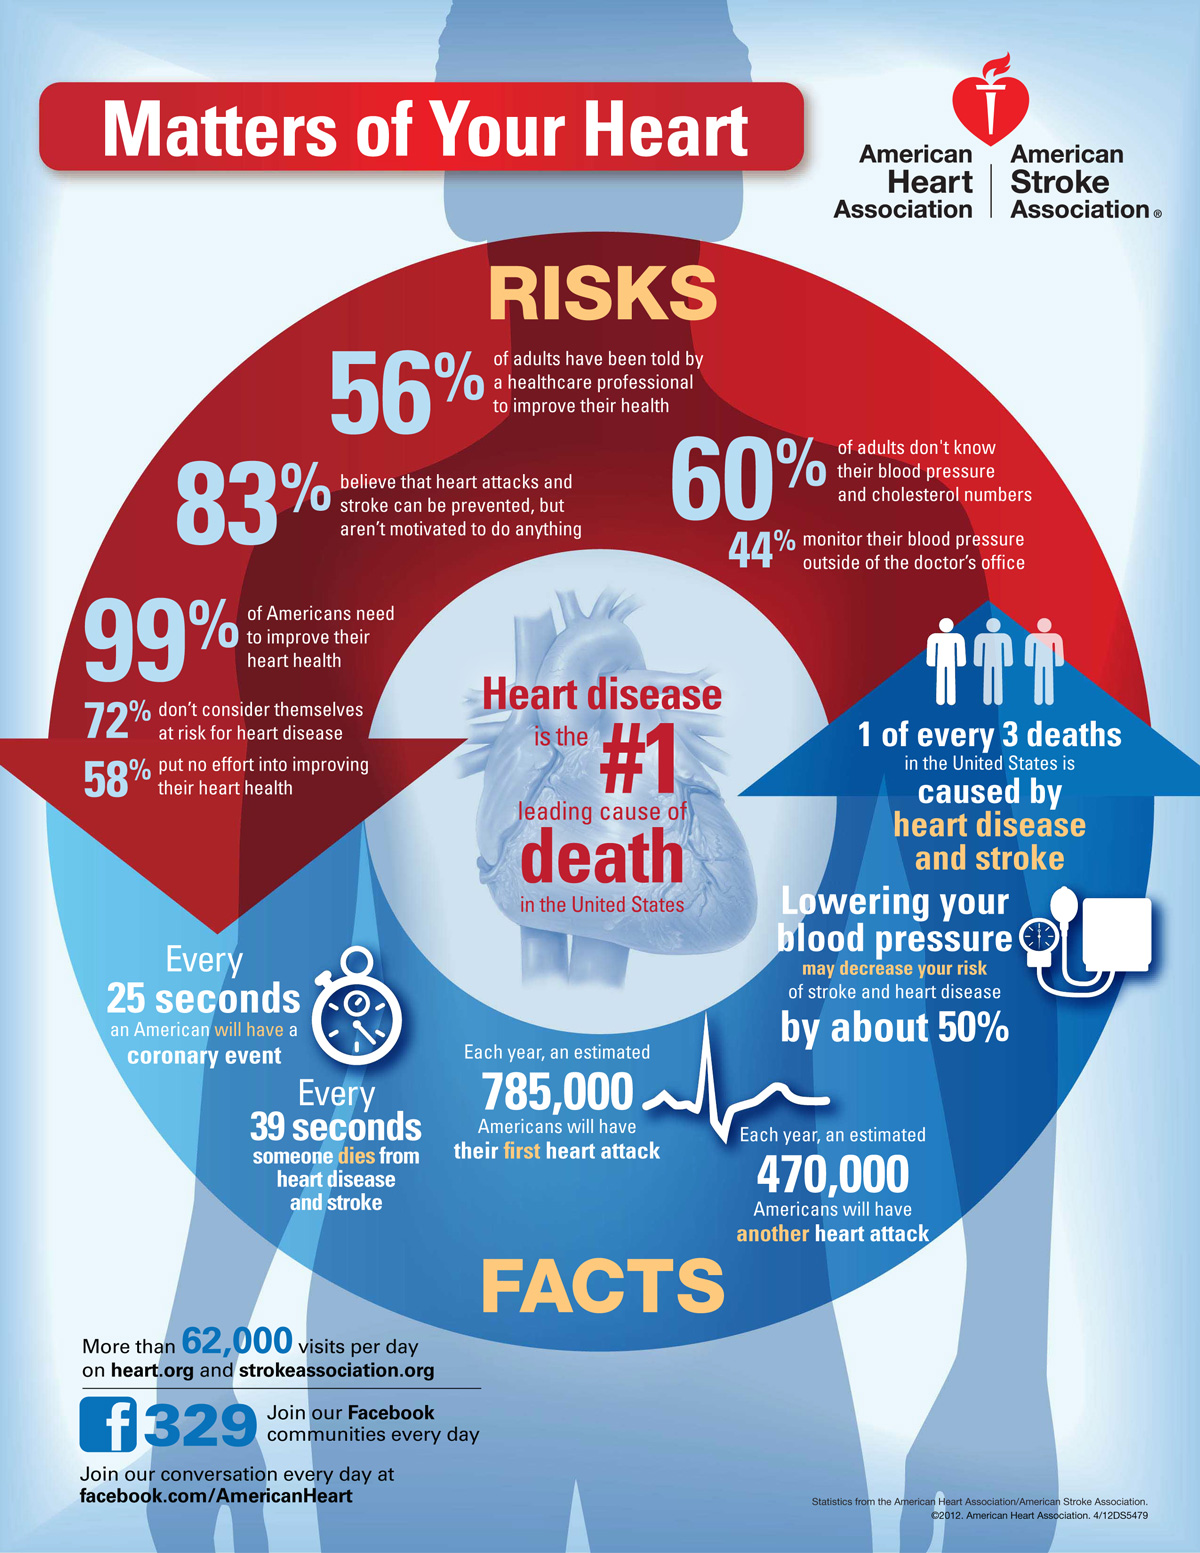 Prevalence Heart Disease Heart Matters What Is The Leading Cause Of Death In The